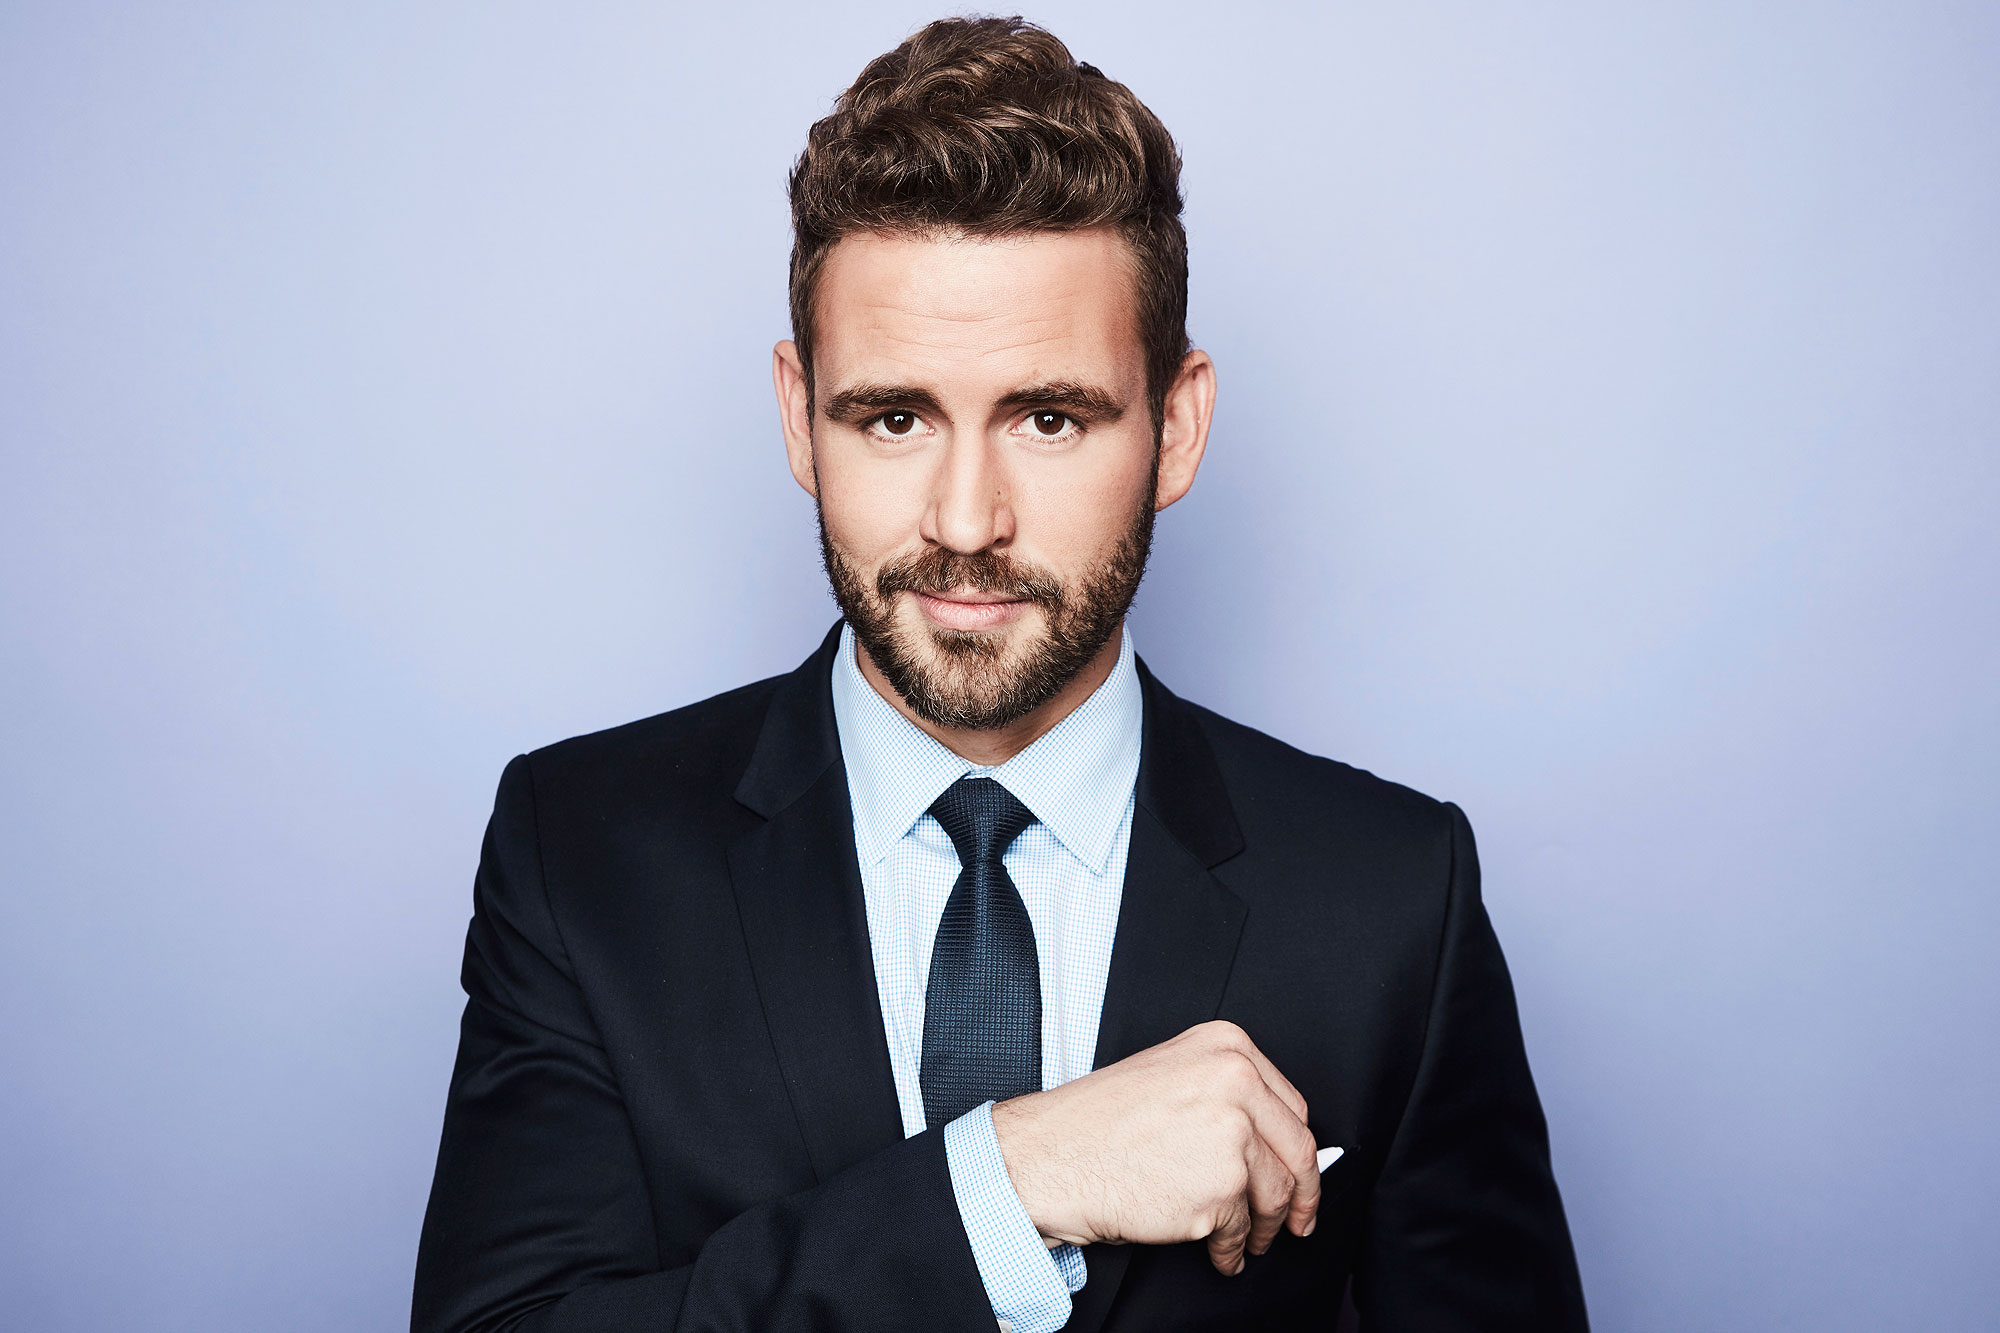 Nick Viall from ABC's 'The Bachelor' poses in the Getty Images Portrait Studio at the 2017 Winter Television Critics Association press tour at the Langham Hotel on January 10, 2017 in Pasadena, California. (Photo by Maarten de Boer/Getty Images Portrait)